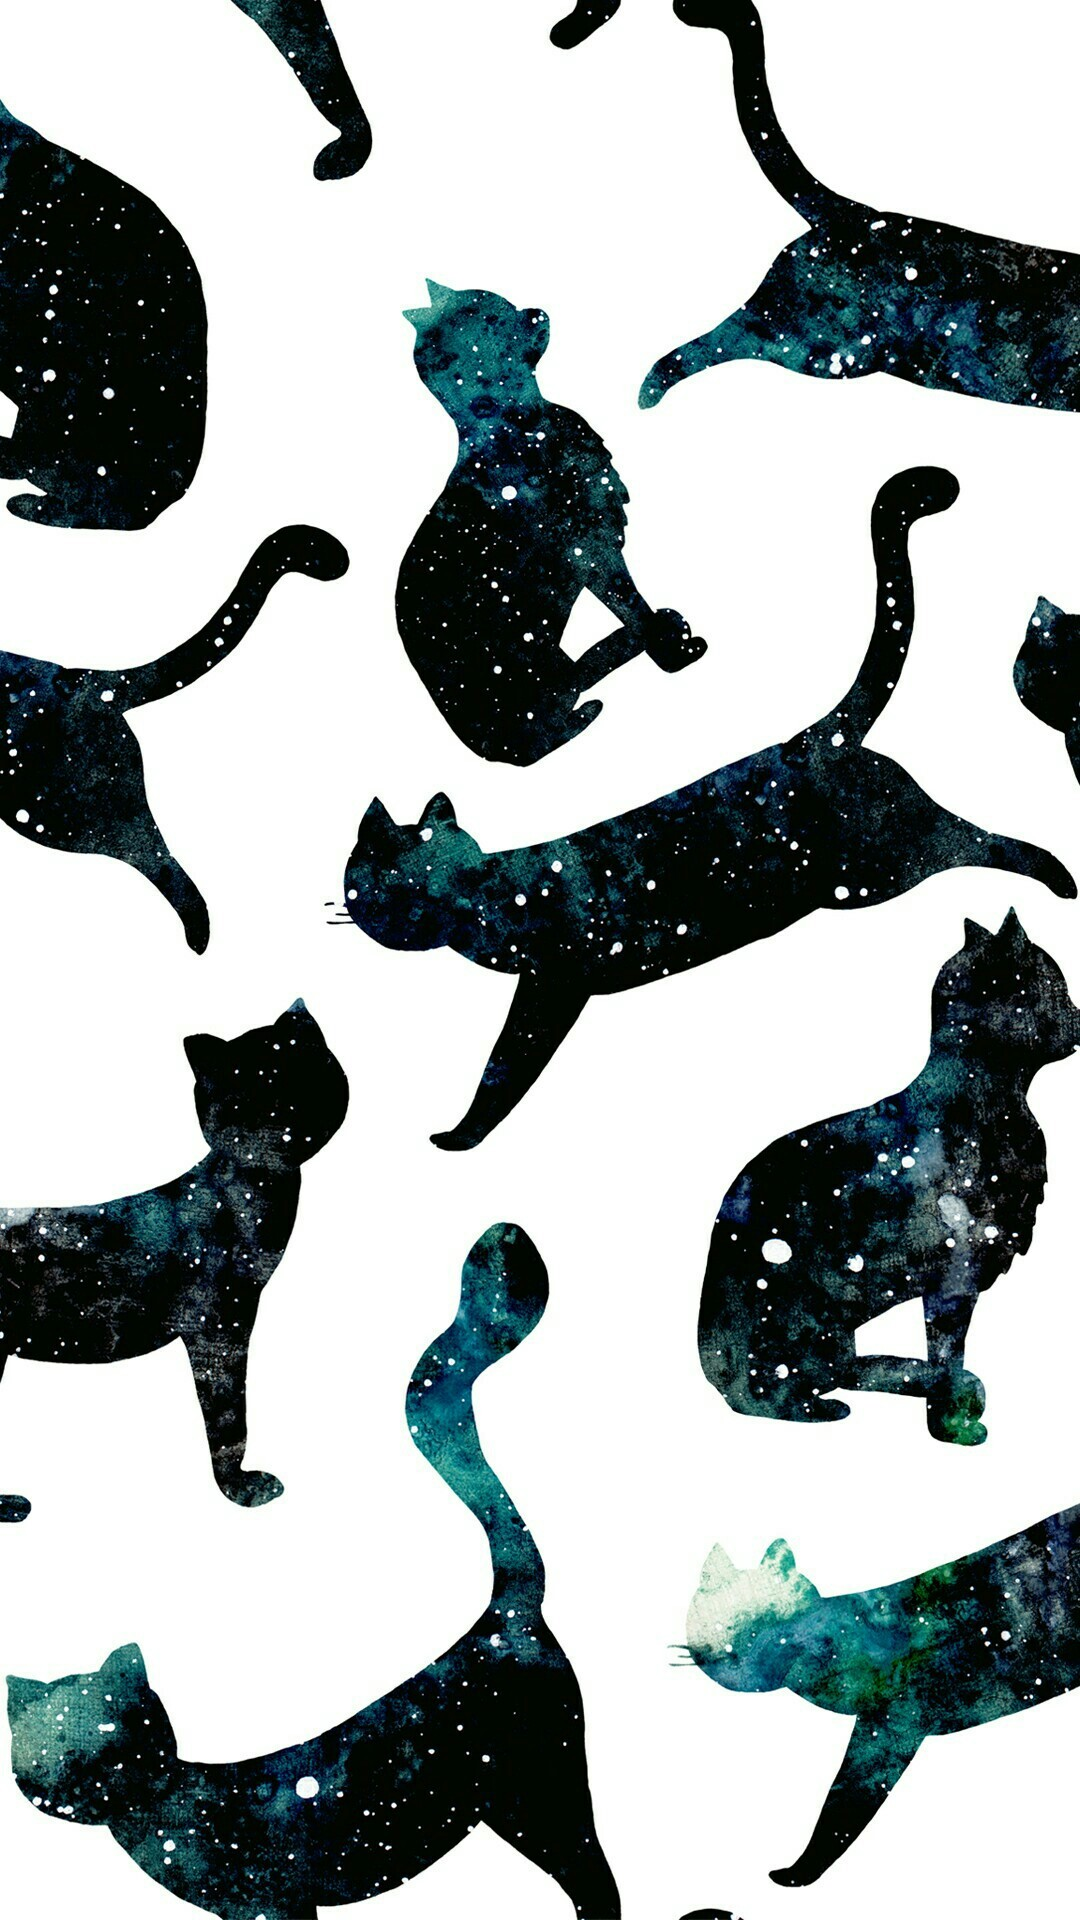 1920x1200 Hipster Galaxy Background Stoned On Tumblr Pinterest Download 1920x1080 Cat Wallpaper